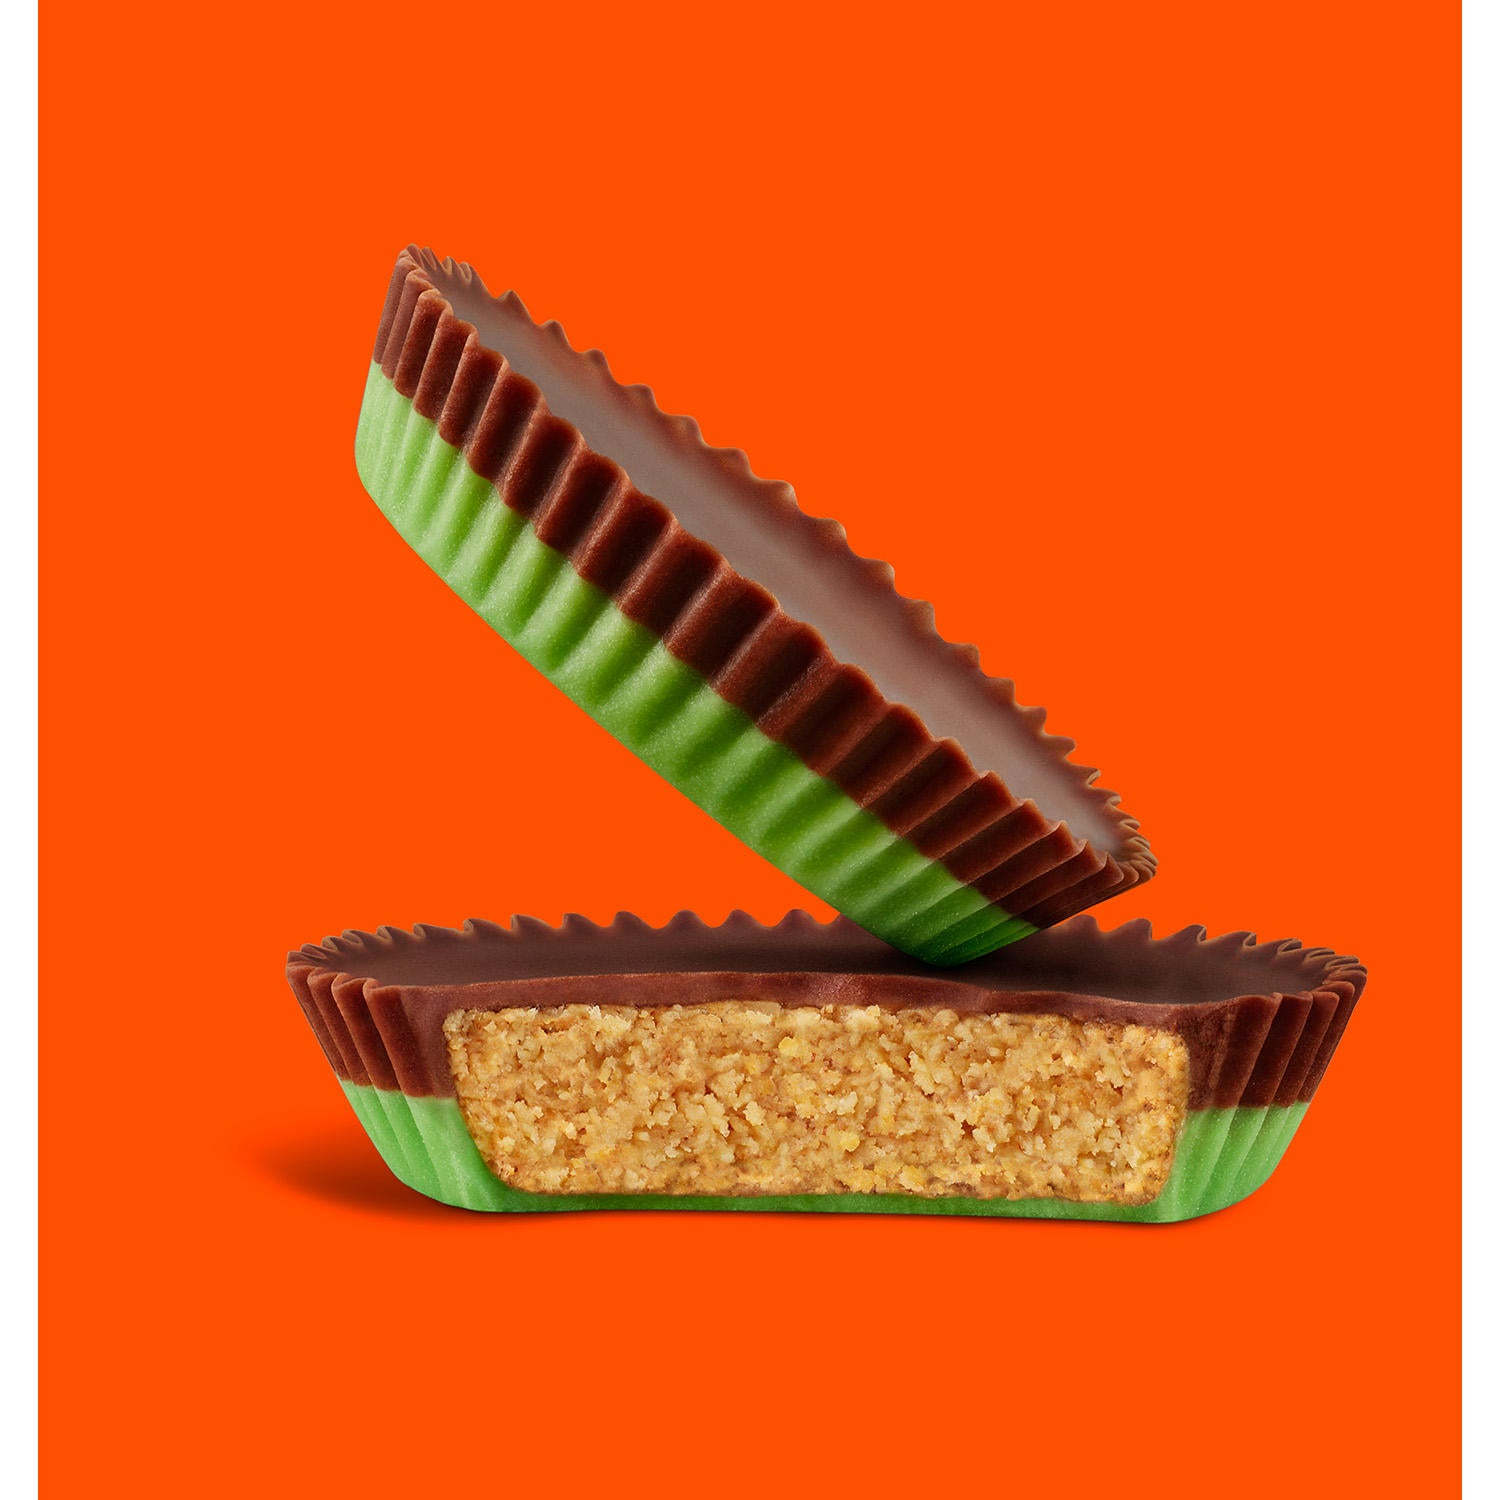 Reese's Franken-Cup Peanut Butter Cup with Halloween Green Creme, 1.2oz, 24pk